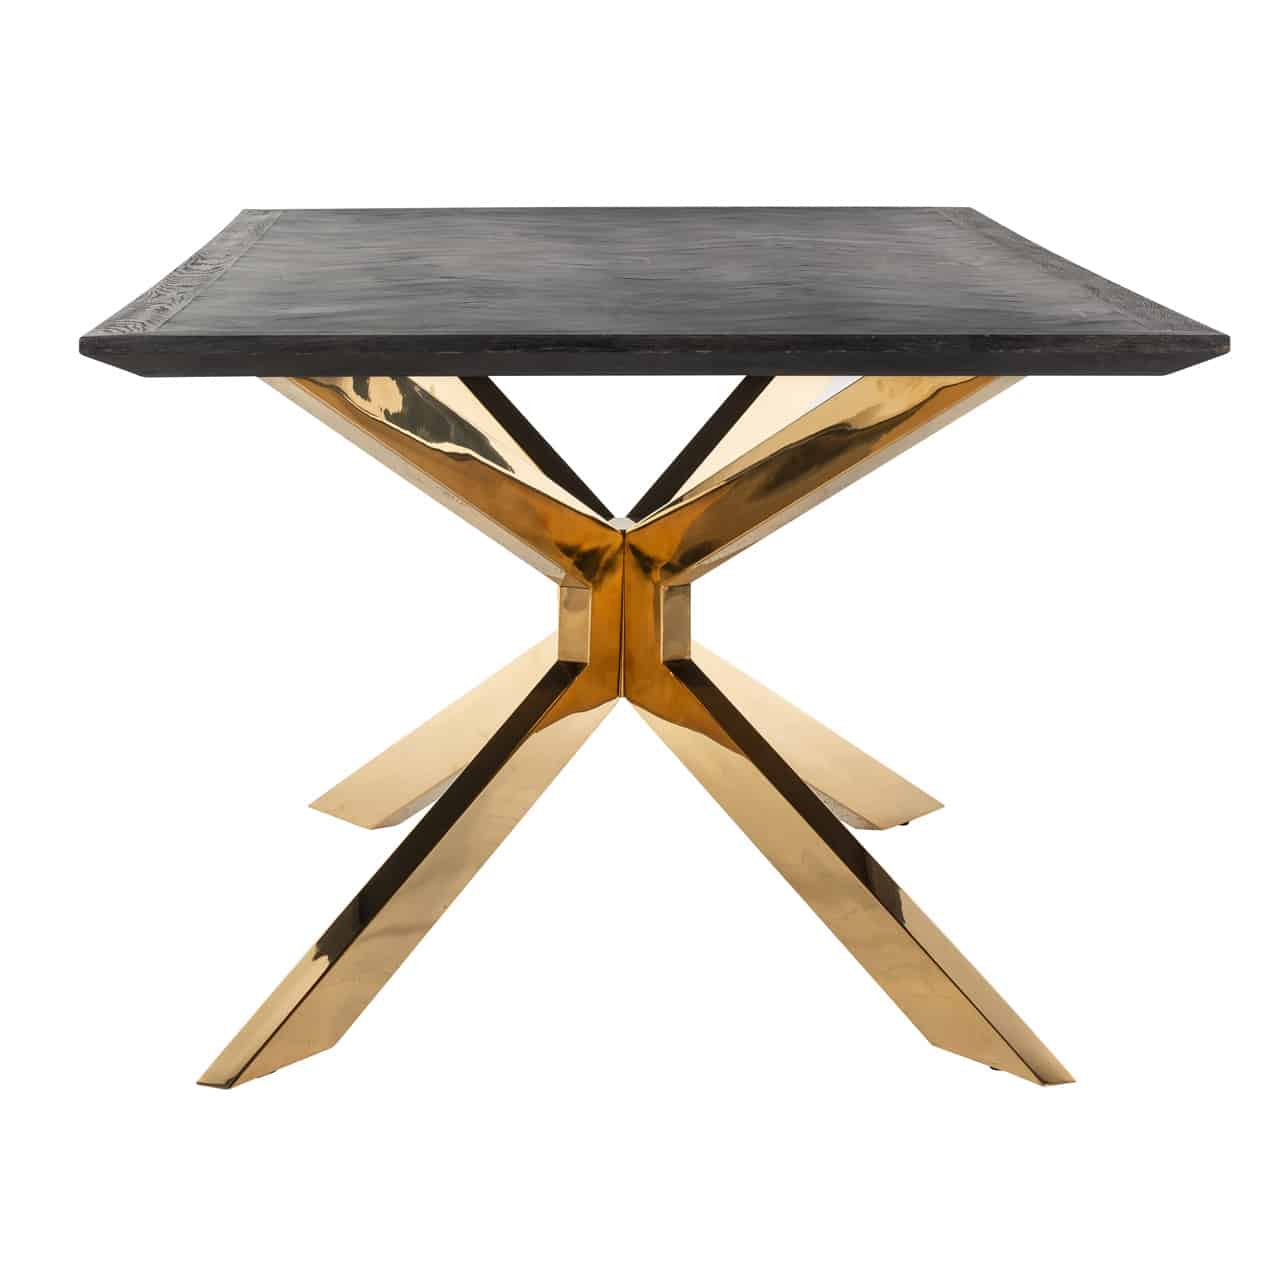 Dining Table Blackbone Matrix Gold 200x100